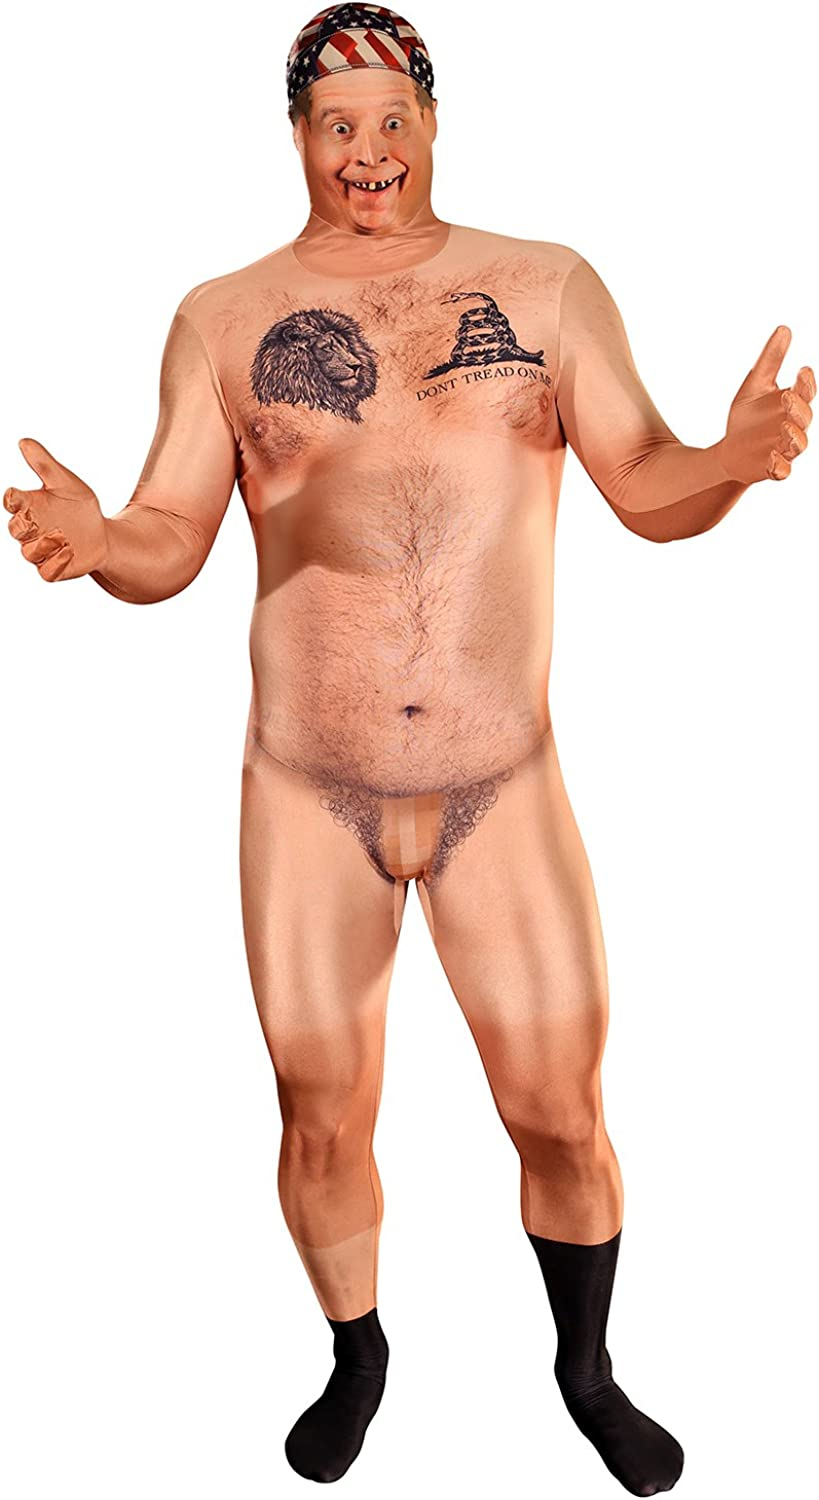 Morphsuits Official Censored Hillbilly Naked Man Costume, This Outfit Is Very Realistic